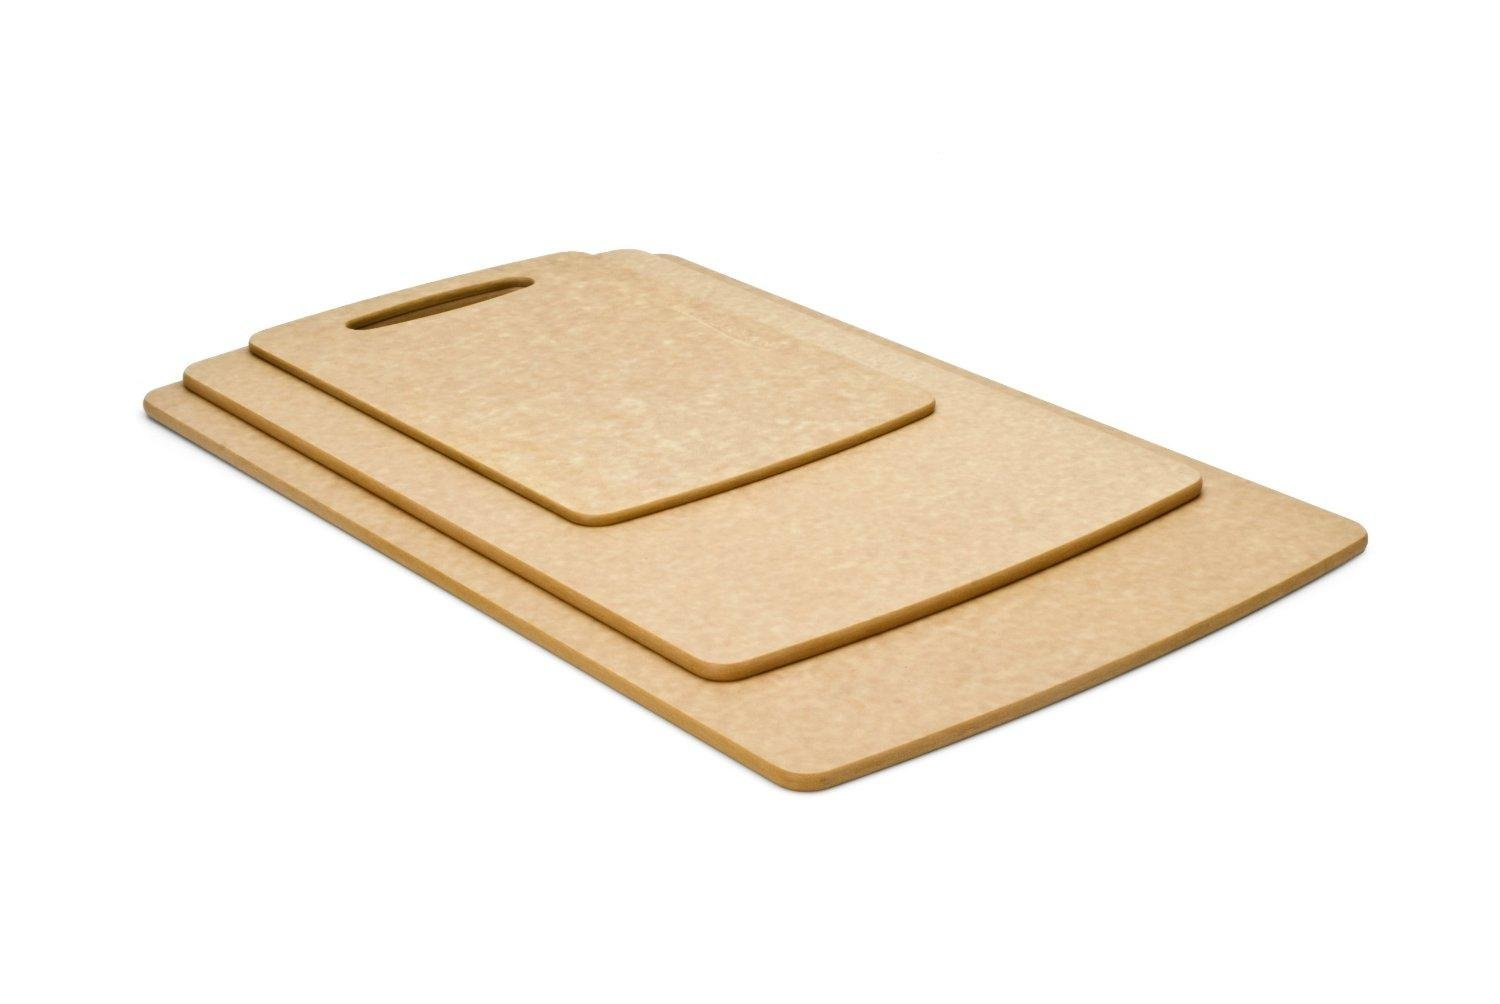 Epicurean Prep Series Big Cutting Boards – Available in Several Sizes and 2 Colors